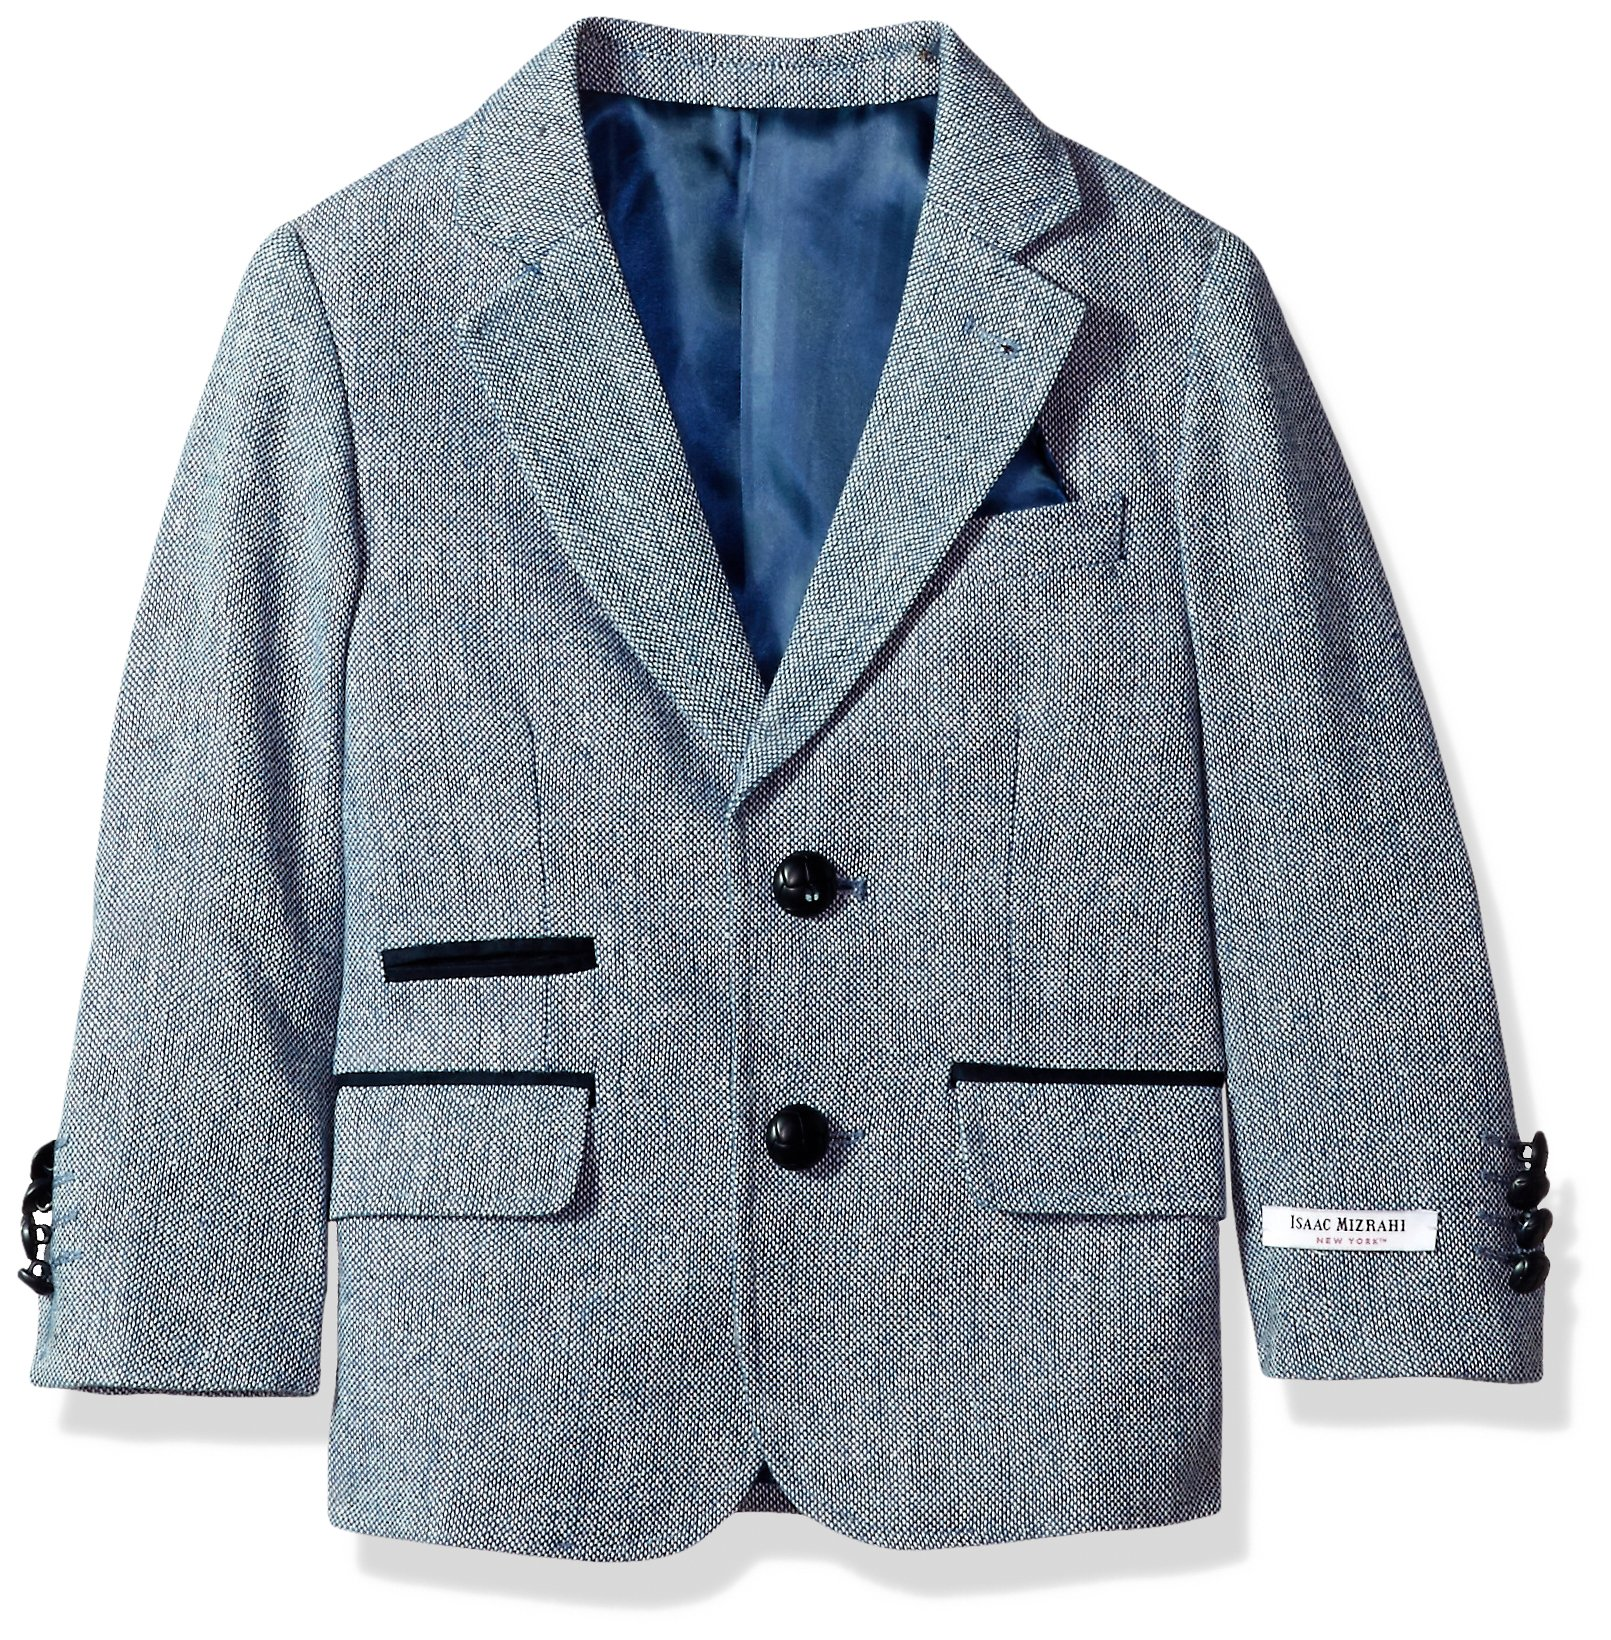 Isaac Mizrahi Big Boys' Tweed Blazer with Suede Contrast, Blue, 20 by Isaac Mizrahi